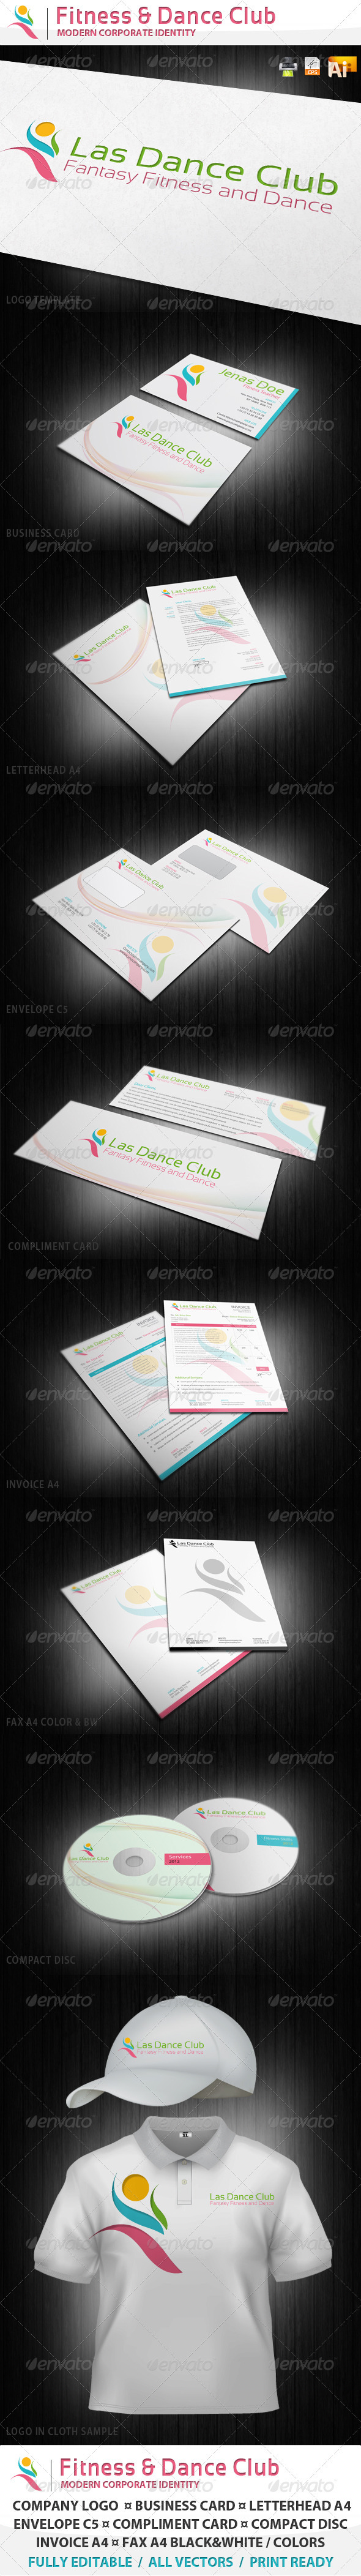 Fitness and Dance Club Corporate Identity - Stationery Print Templates